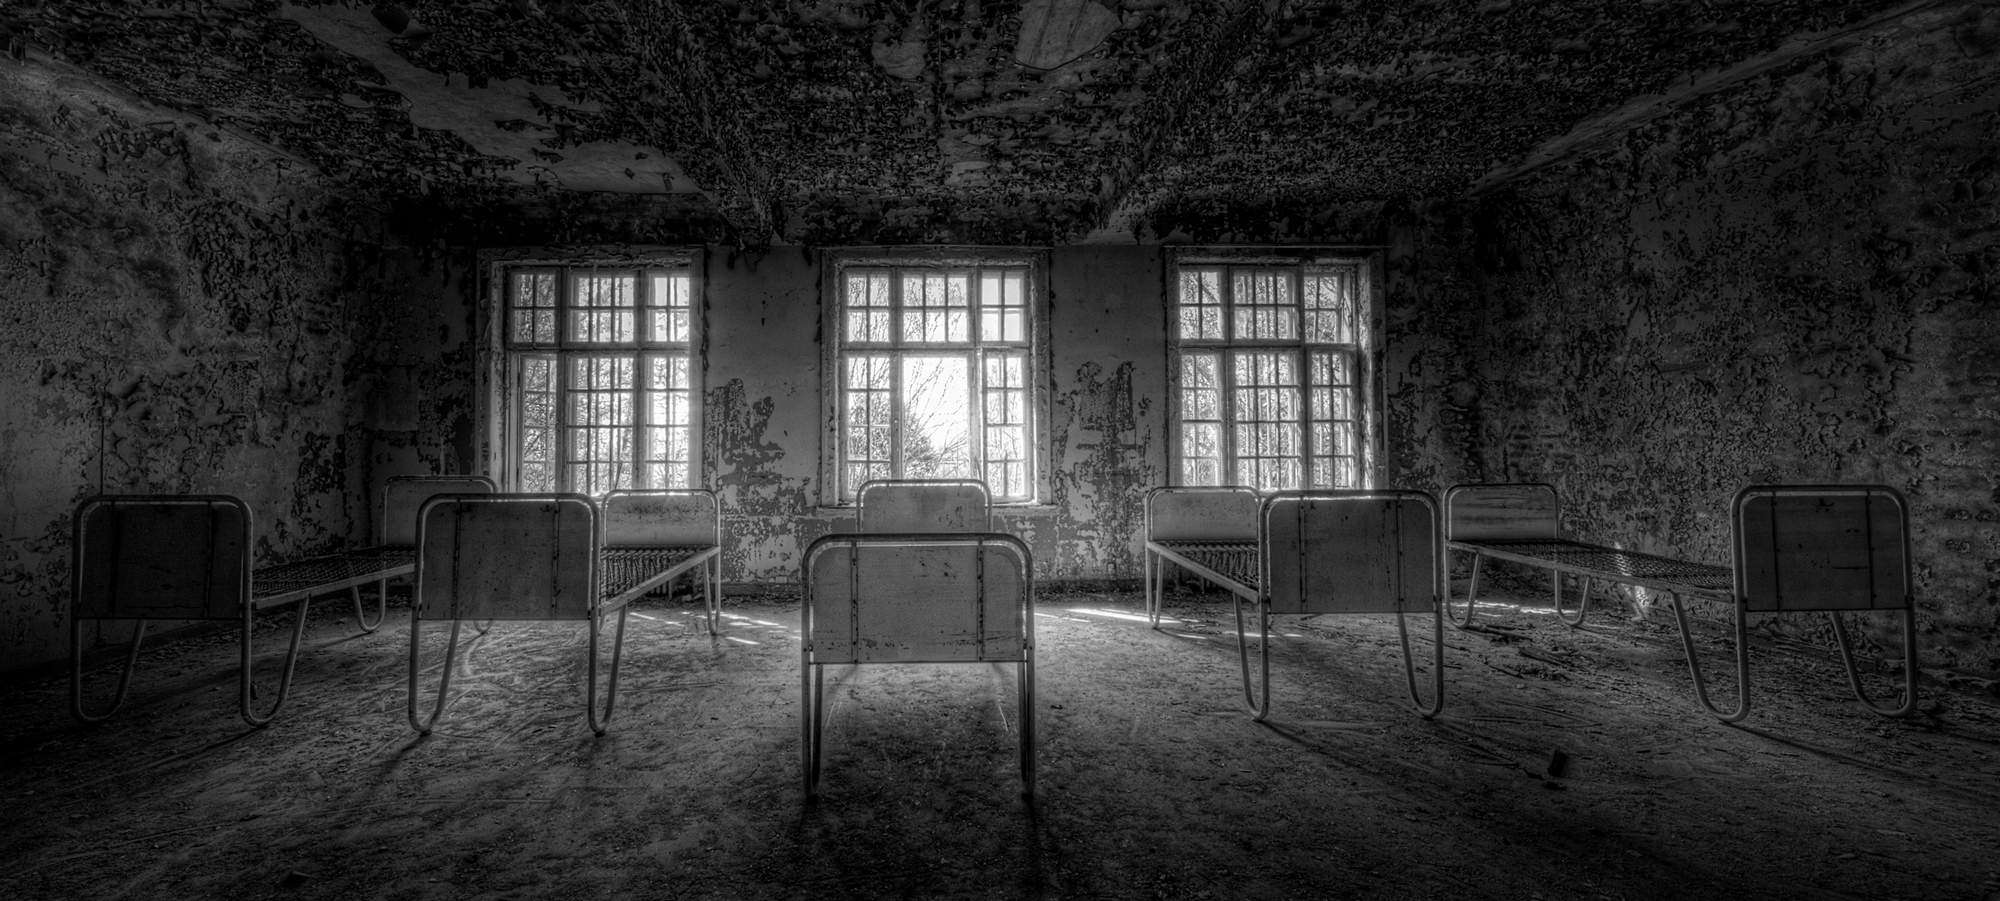 Newsham Park Hospital Fright Fest Liverpool